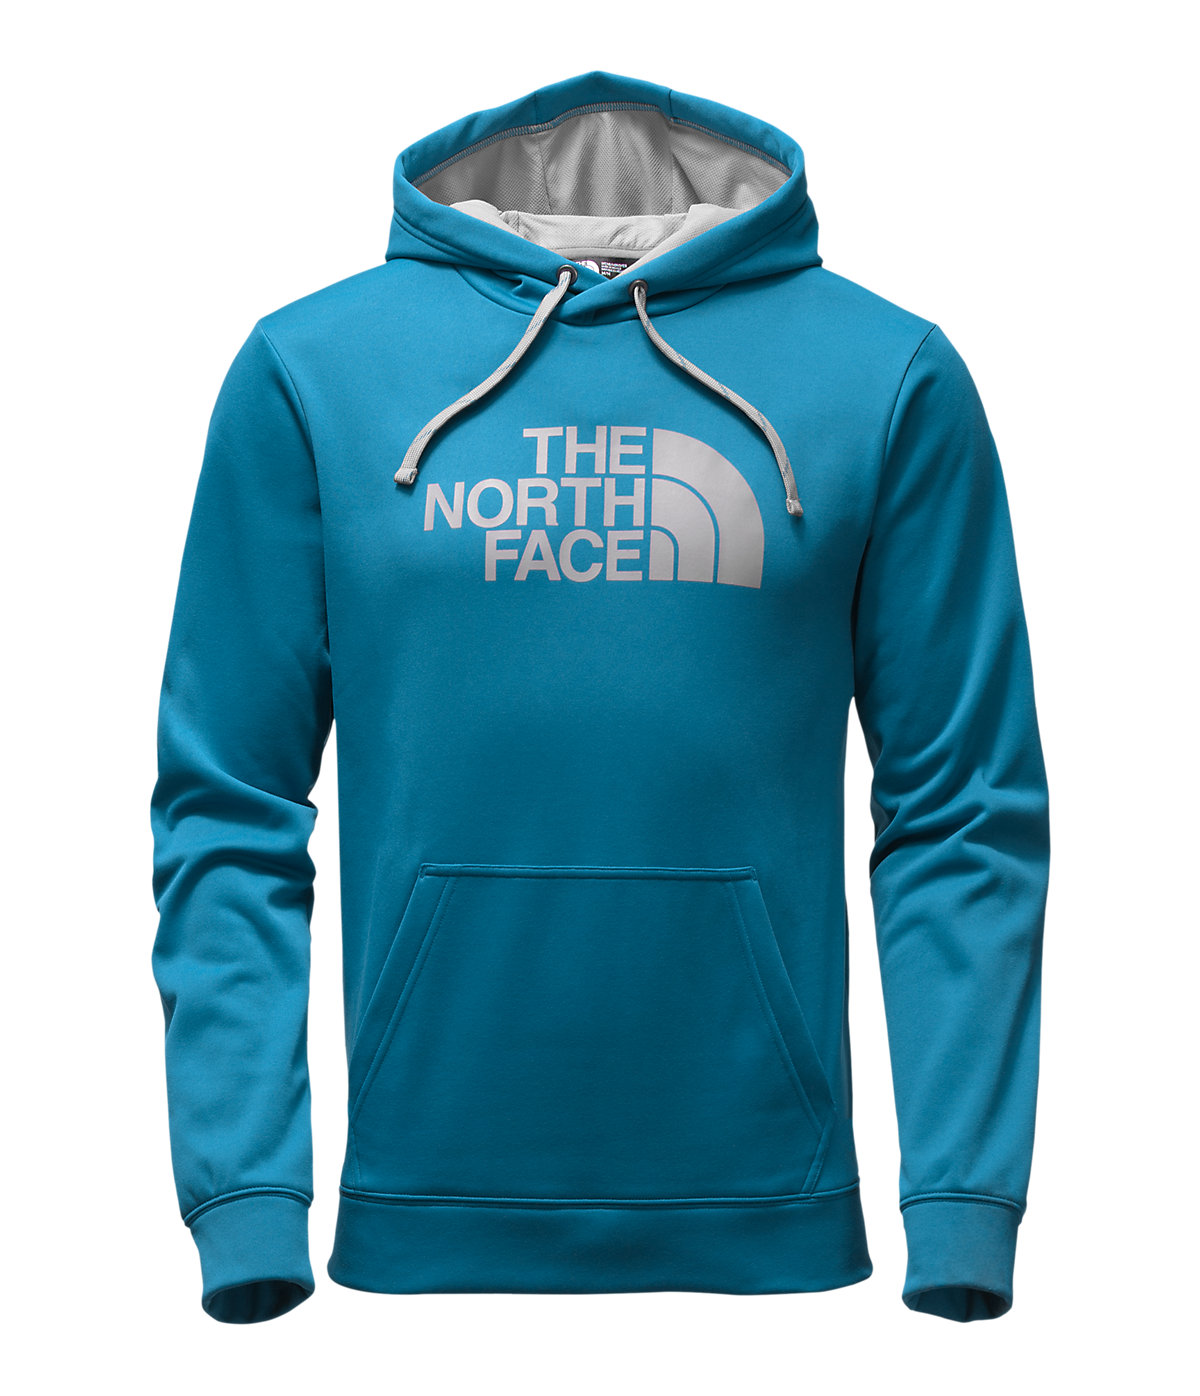 The North Face Men S Surgent Half Dome Hoodie